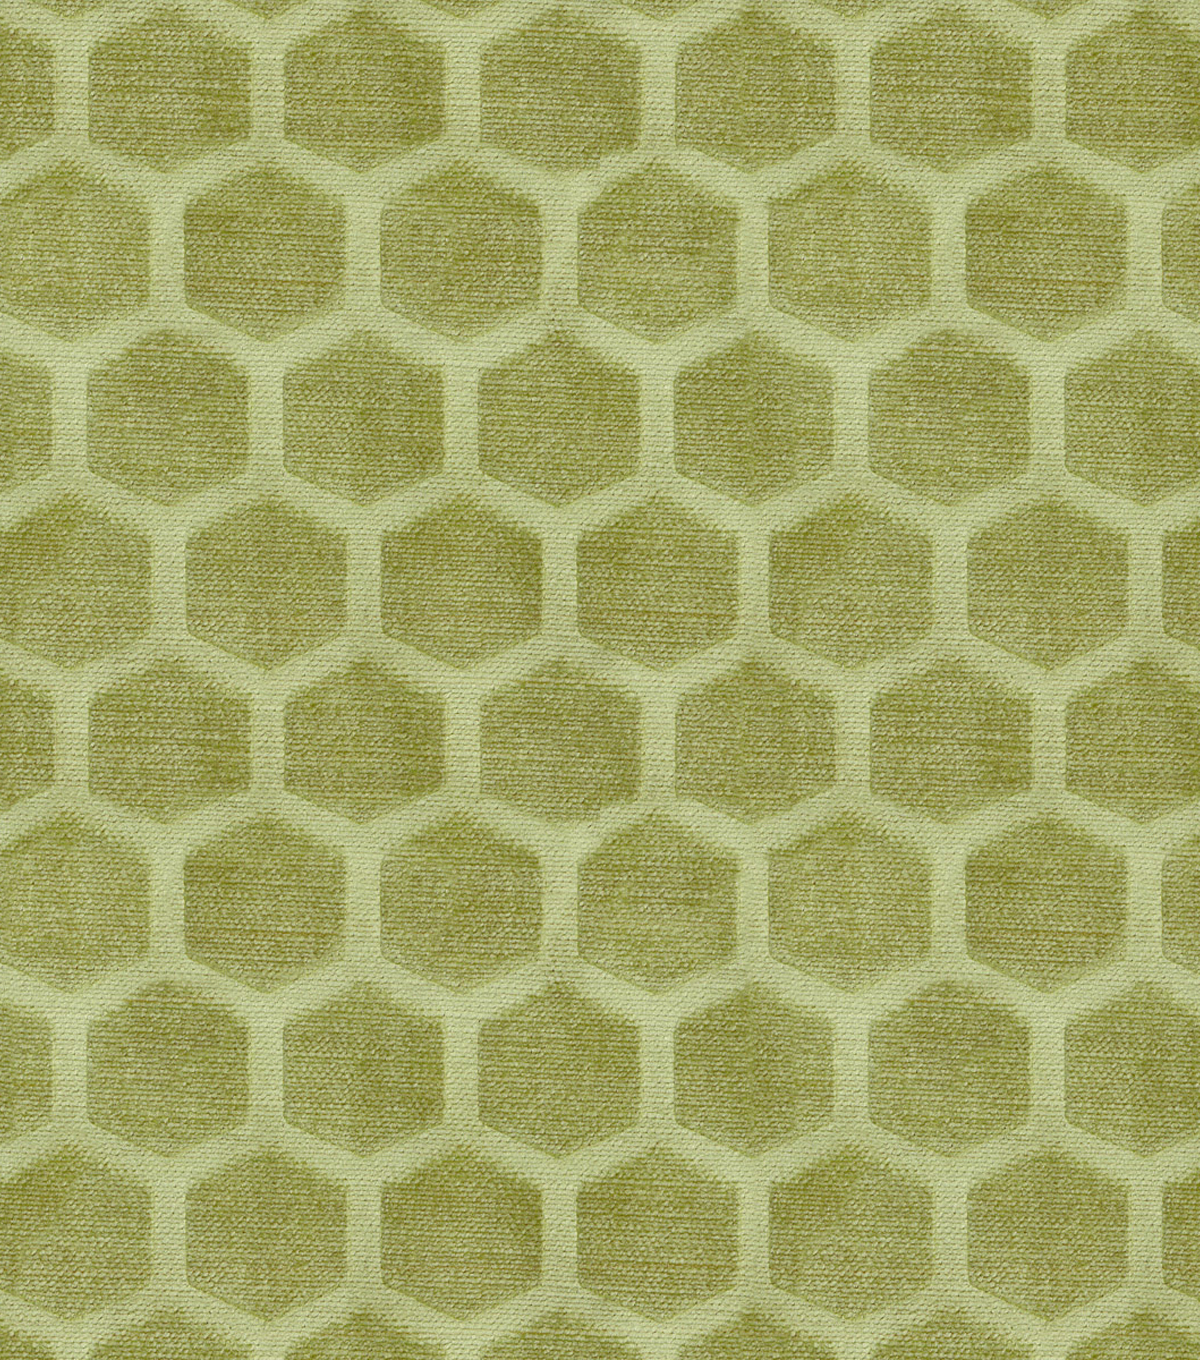 Waverly Symmetry Upholstery Fabric 56\u0022-Moss